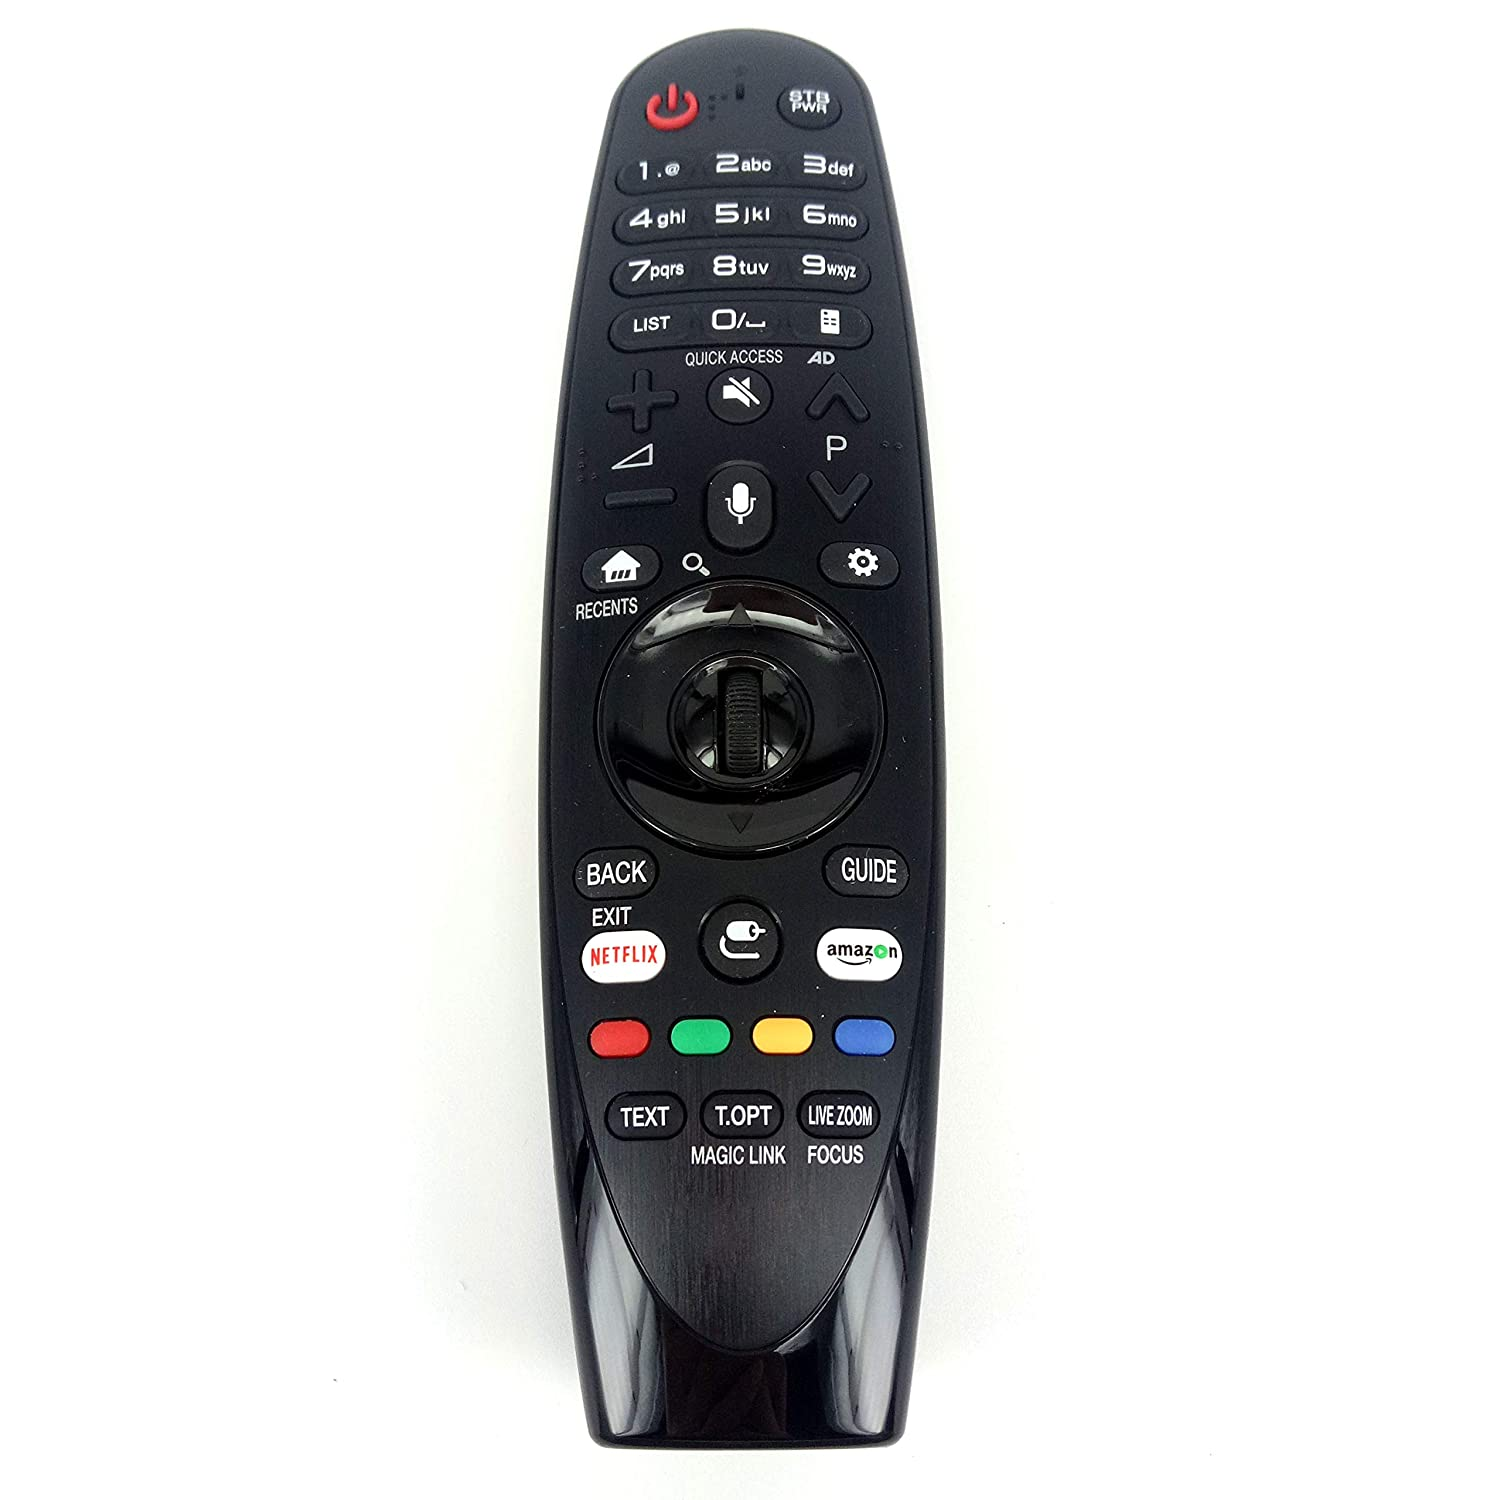 Amazon com: Meide AN-MR650A for LG Magic Remote Control with Voice